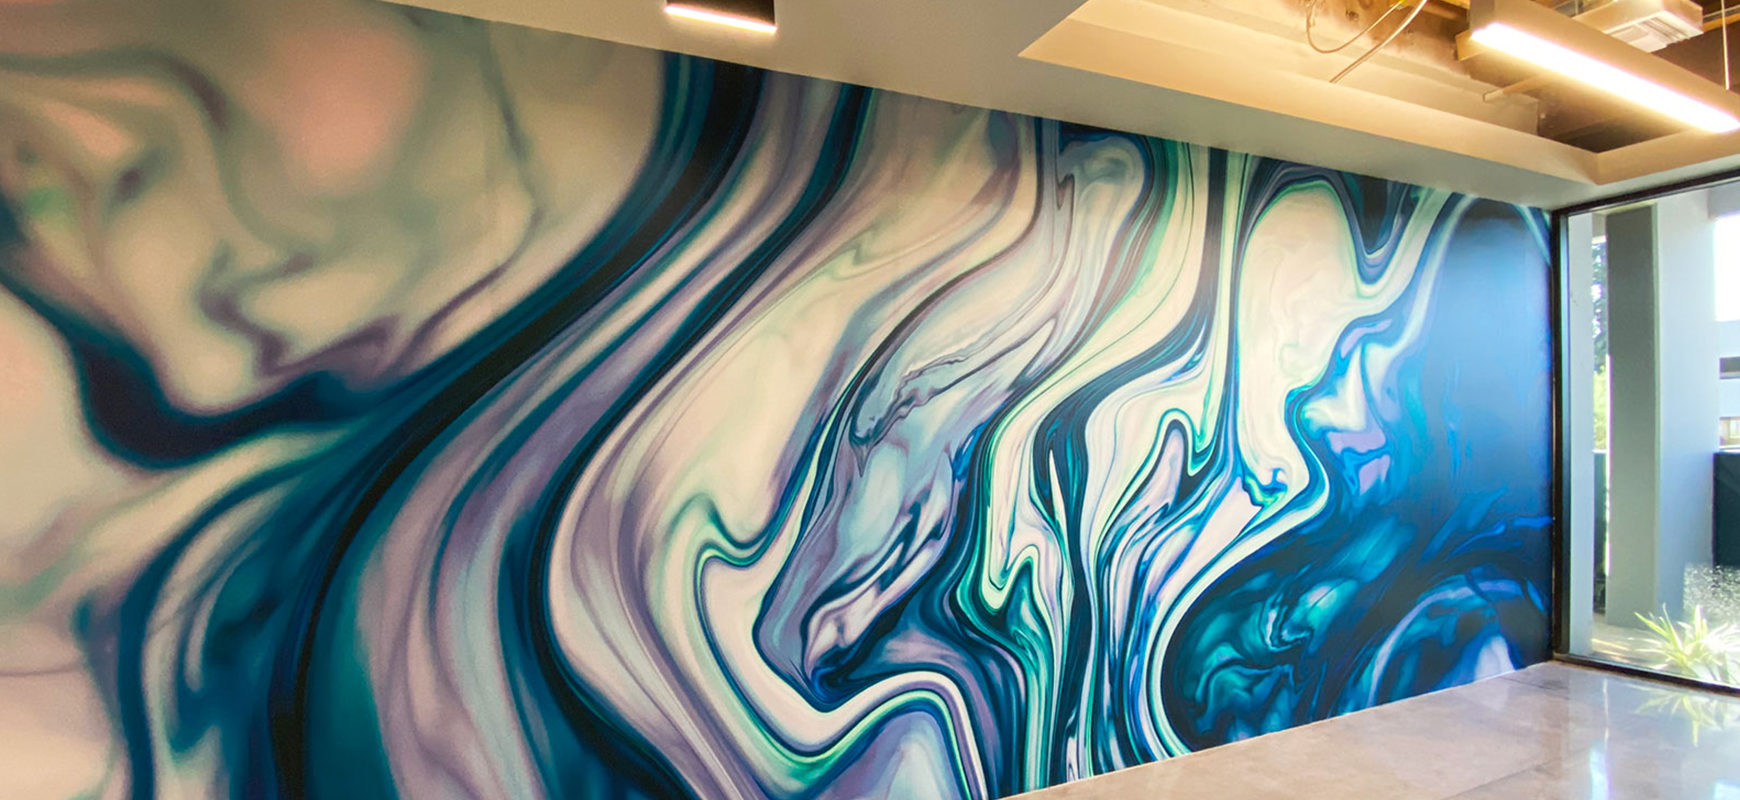 colorful custom decals made of opaque vinyl for interior wall decorating